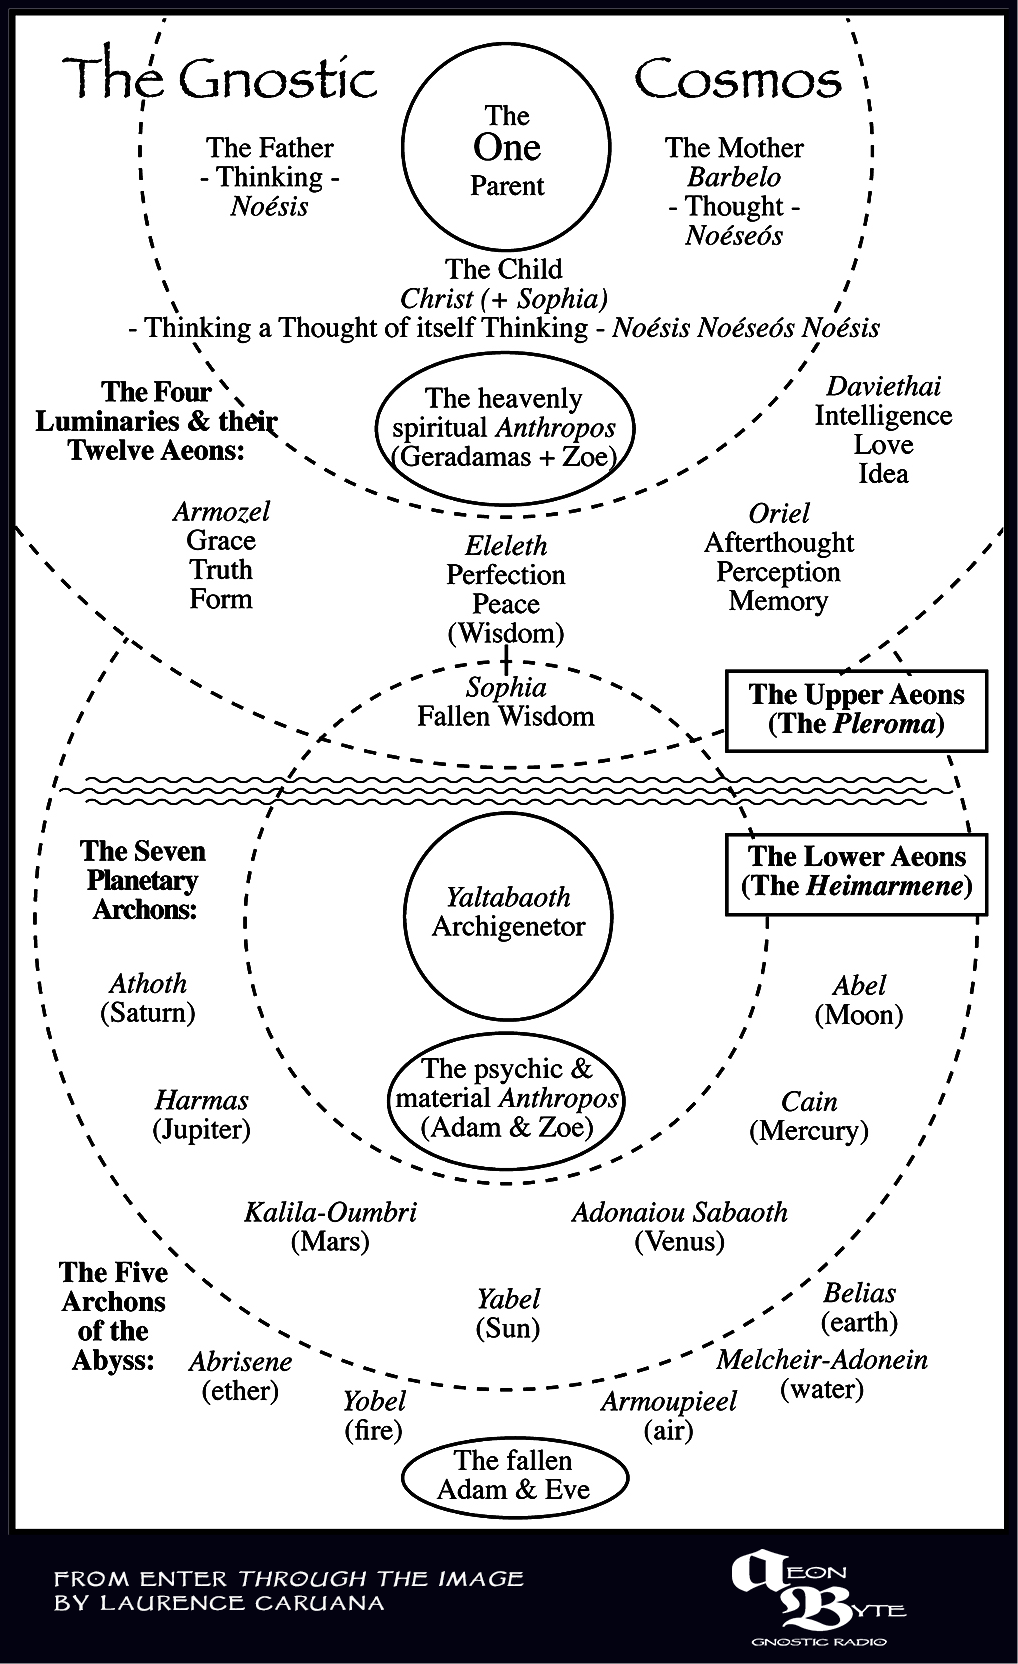 the-gnostic-cosmos  The Gnostic Cosmos [Infographic] The Gnostic Cosmos